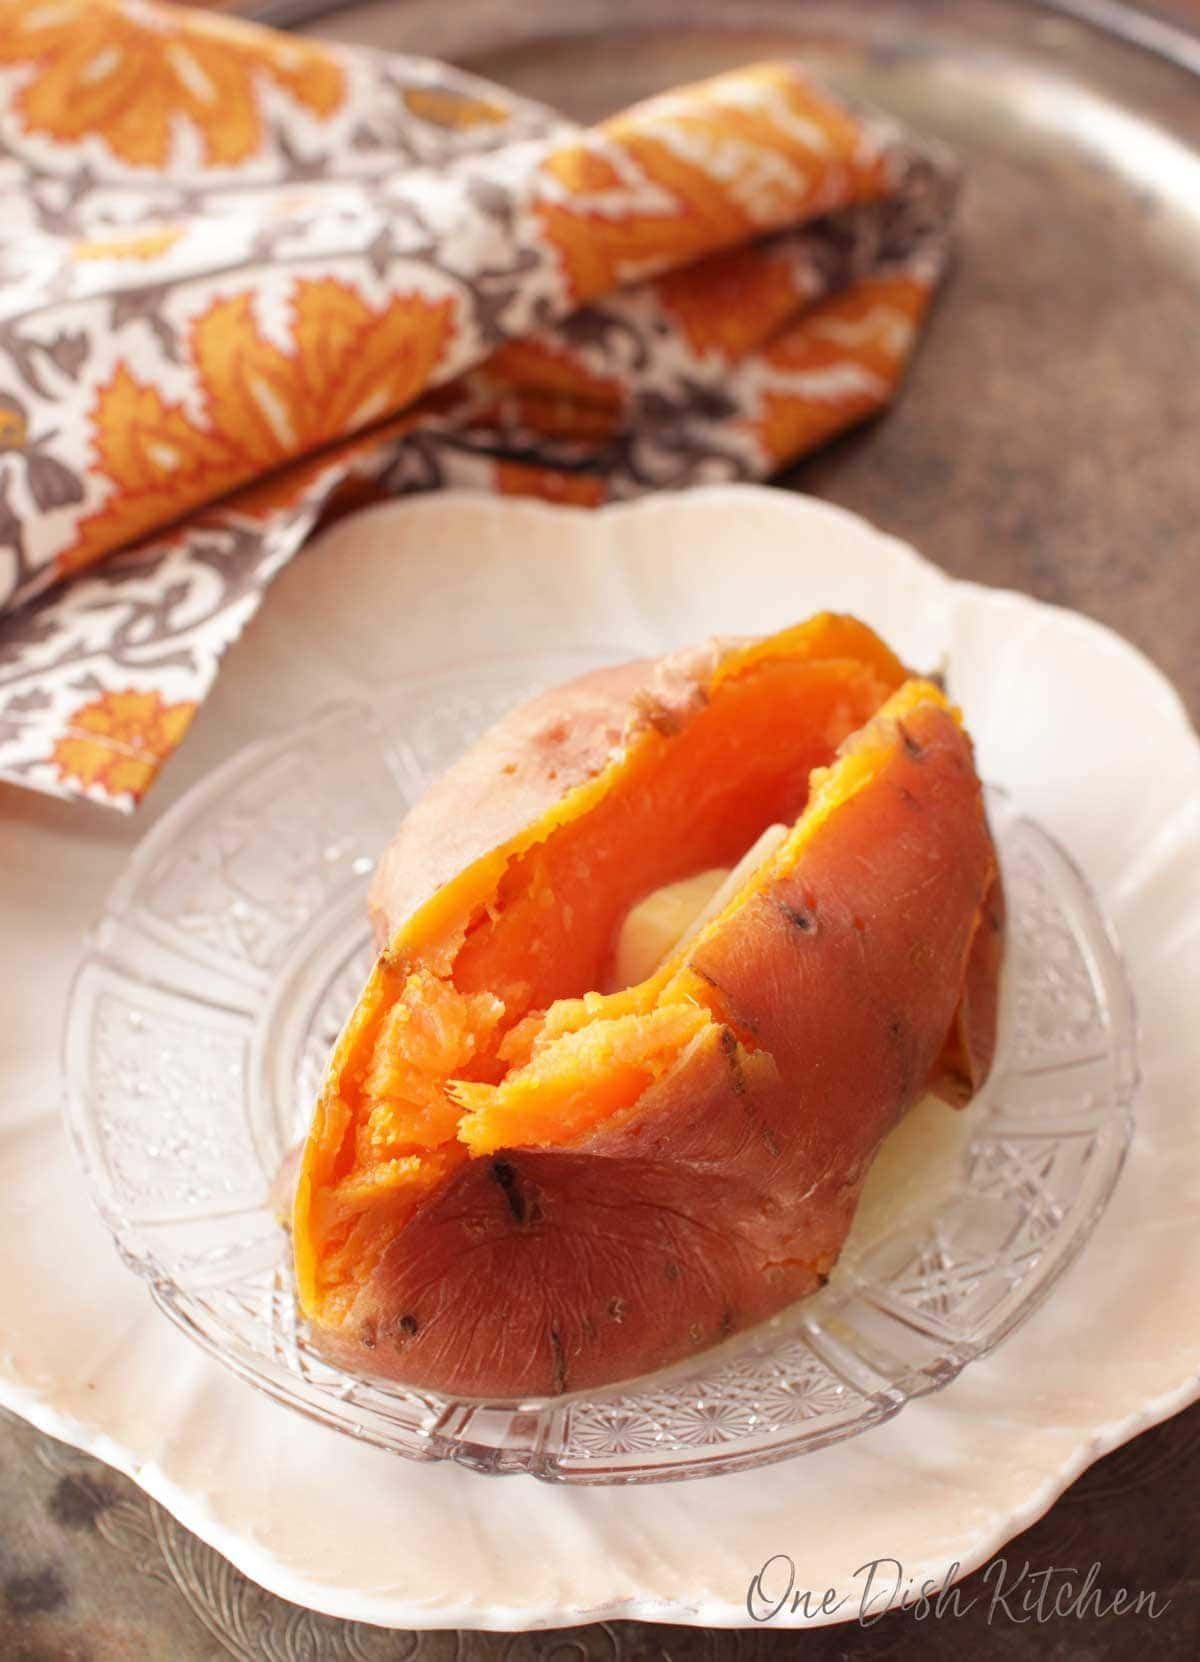 Cooked sweet potato plated on a metal tray with a grey and orange cloth napkin